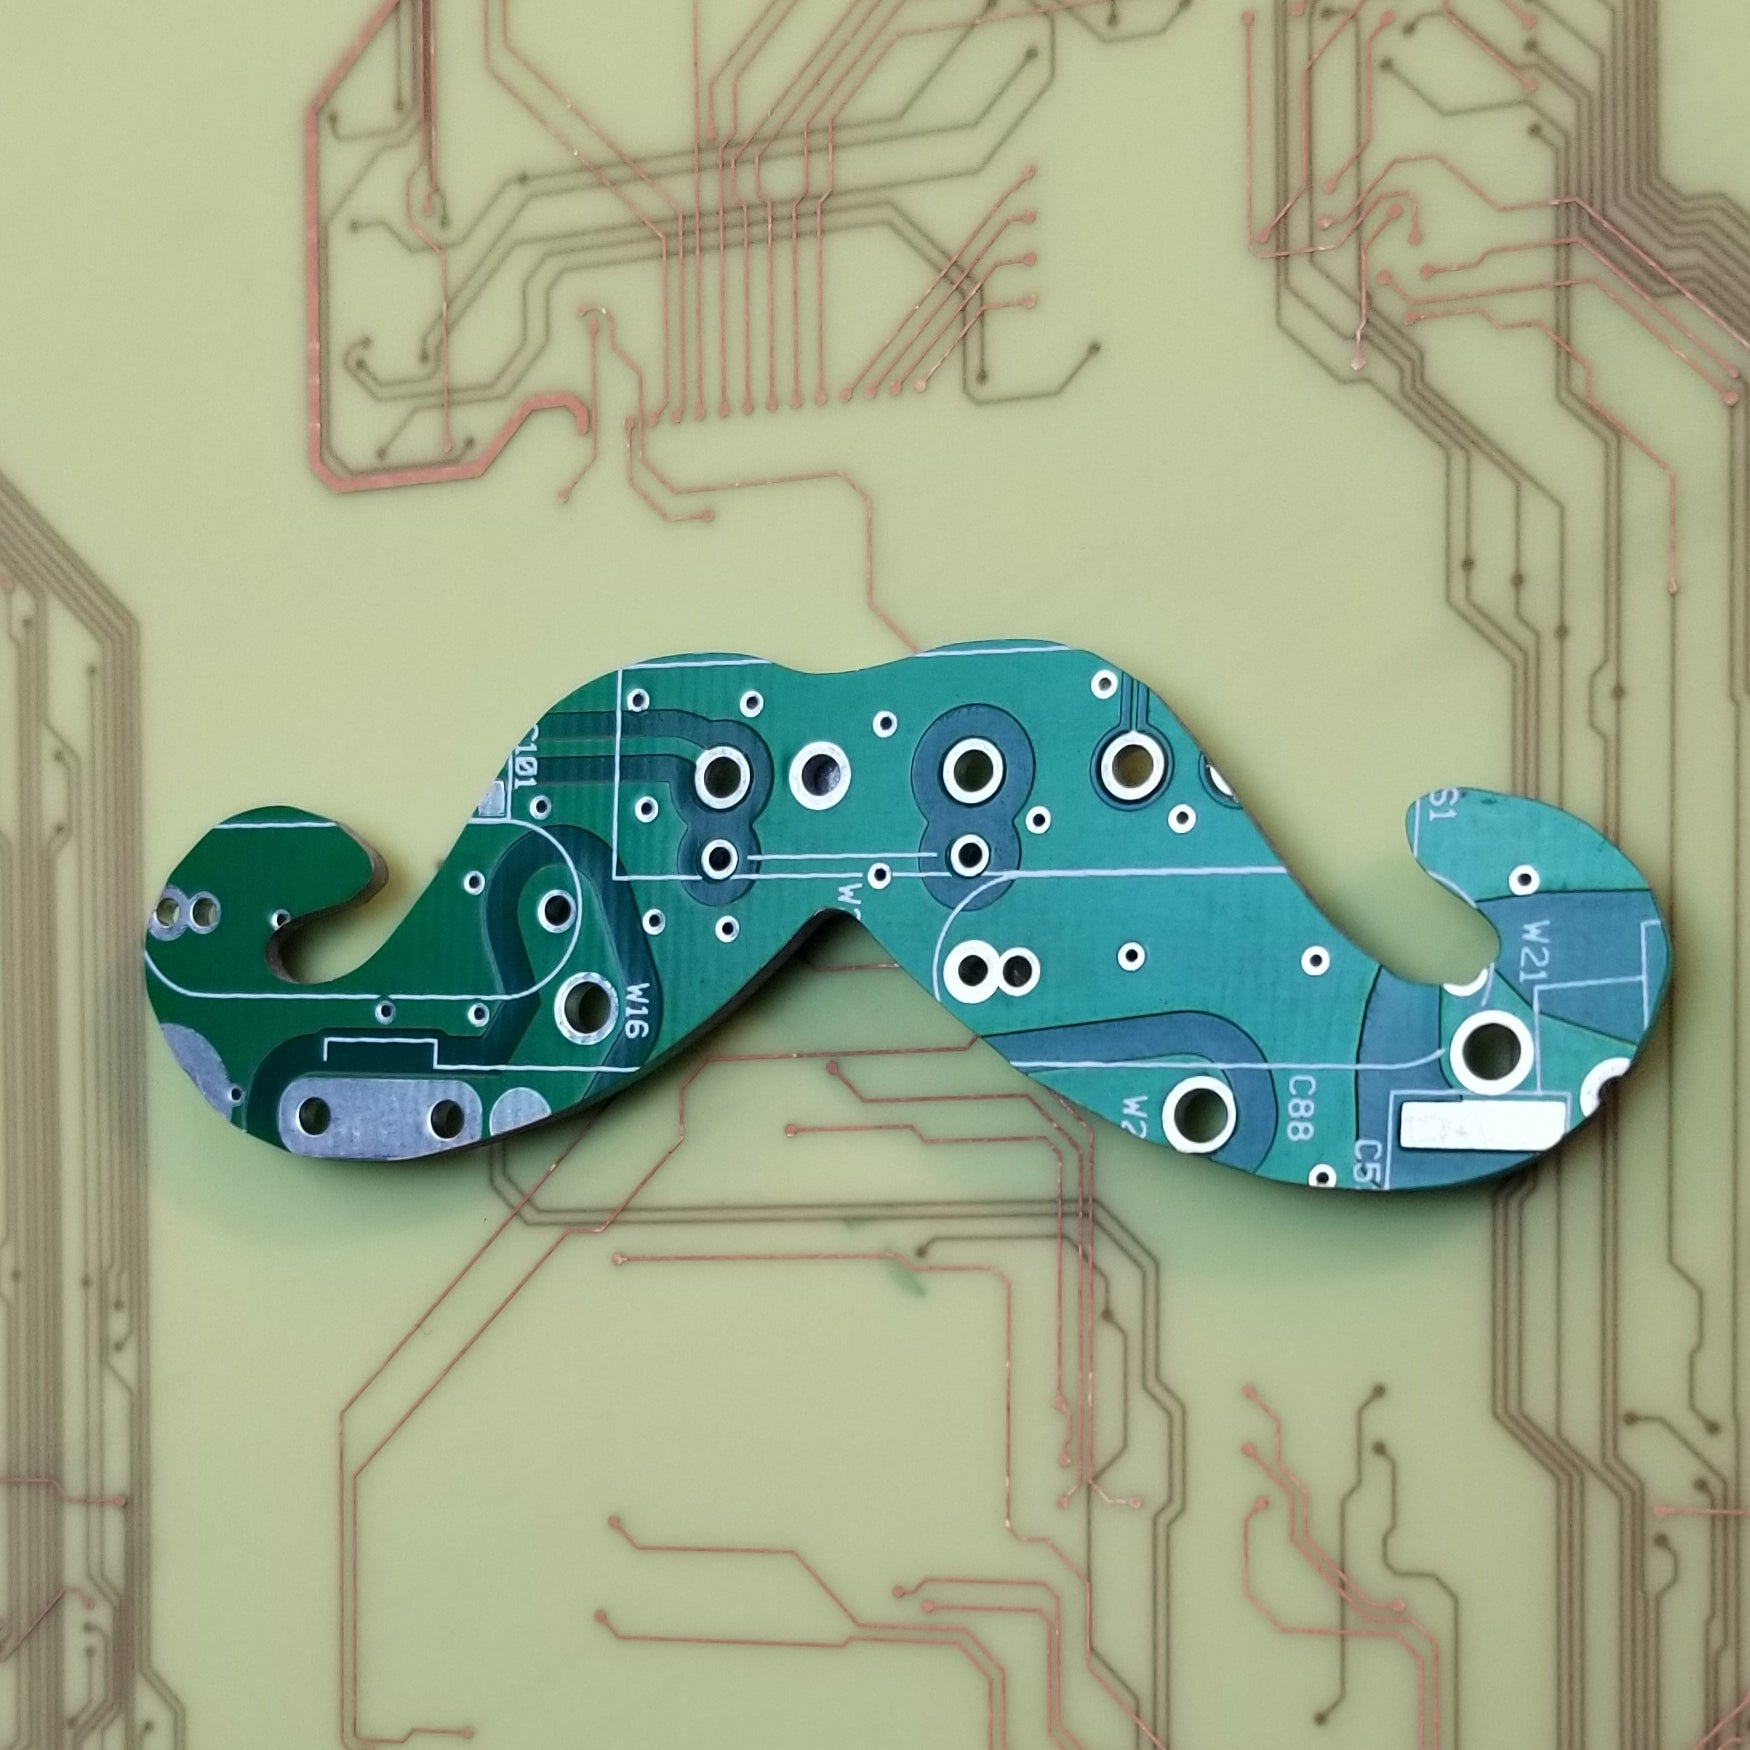 Circuit Board Mustache - TechWears Ltd